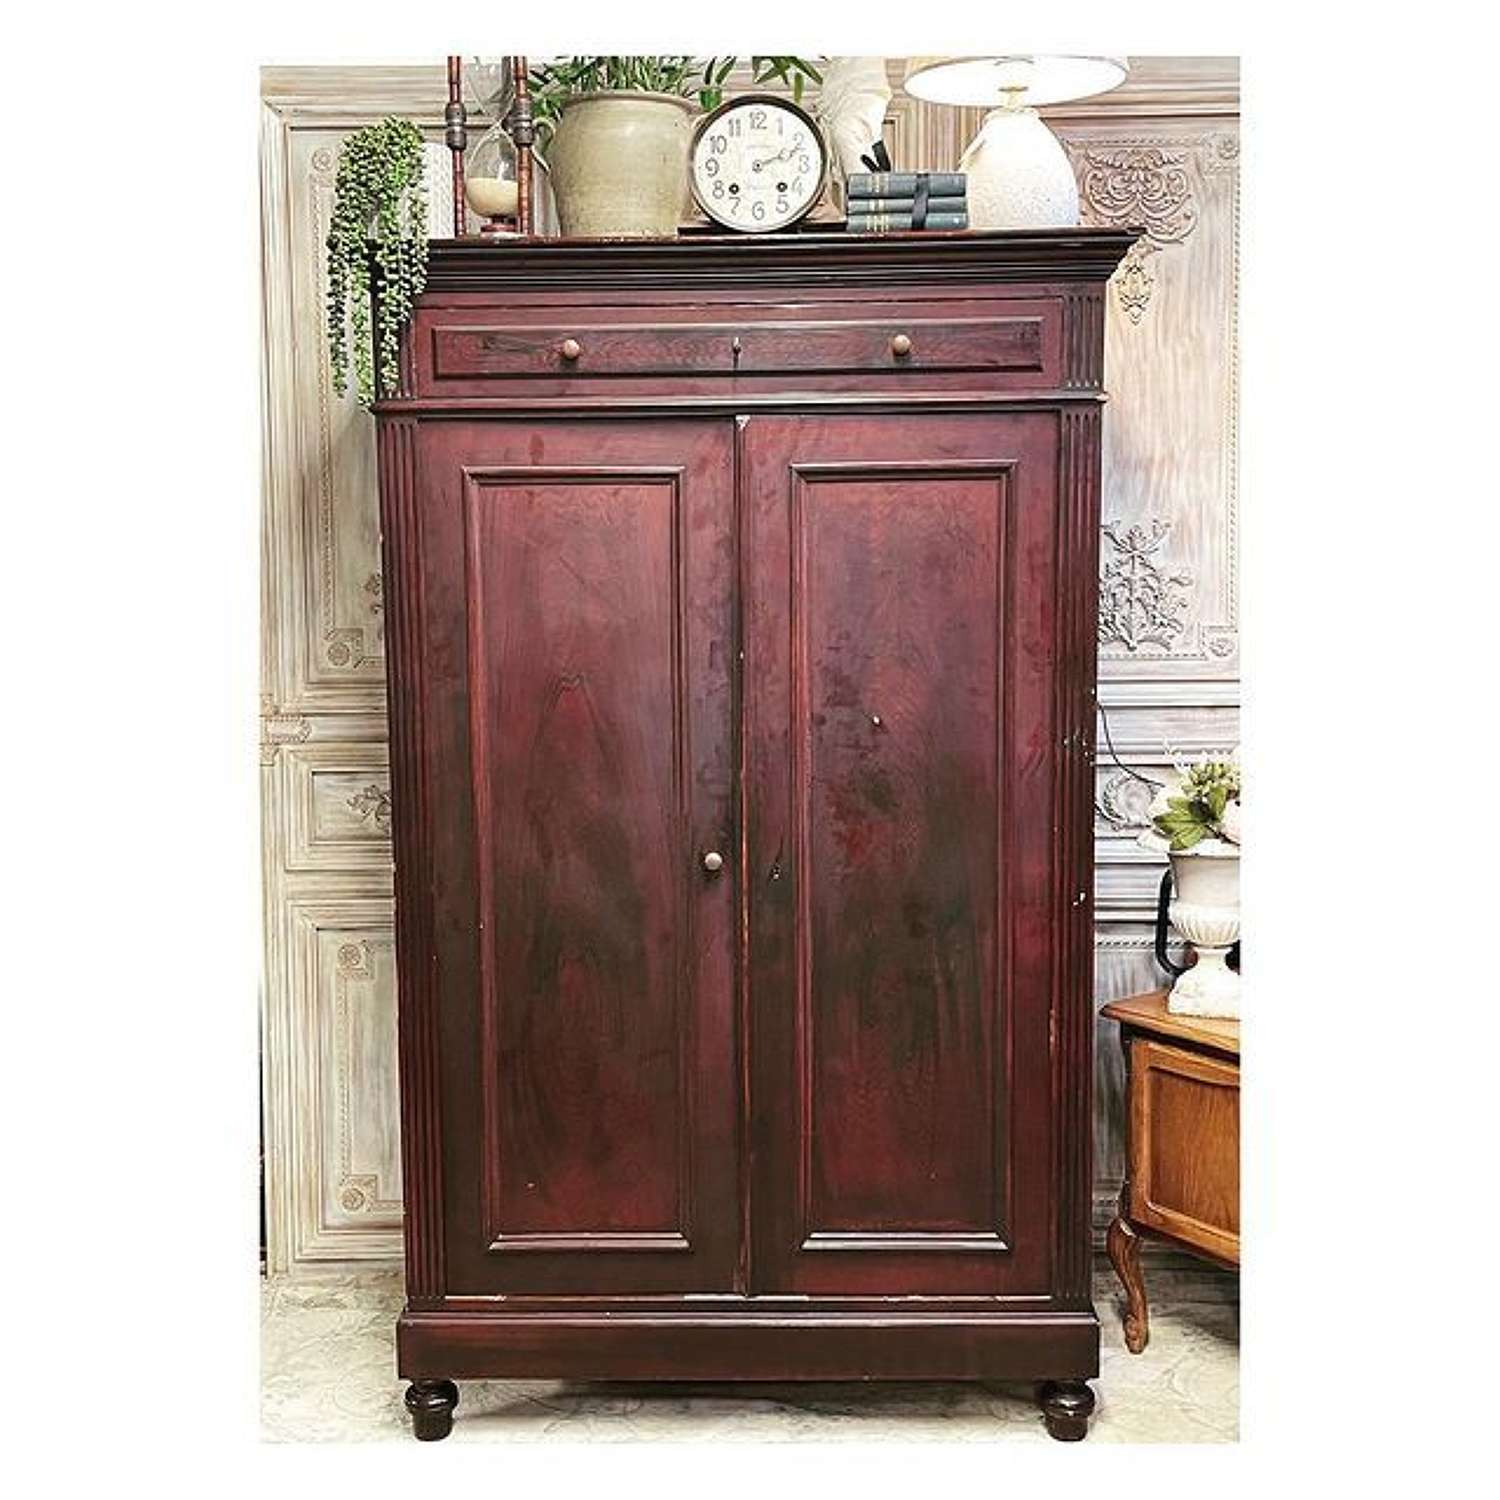 French Maidens cupboard